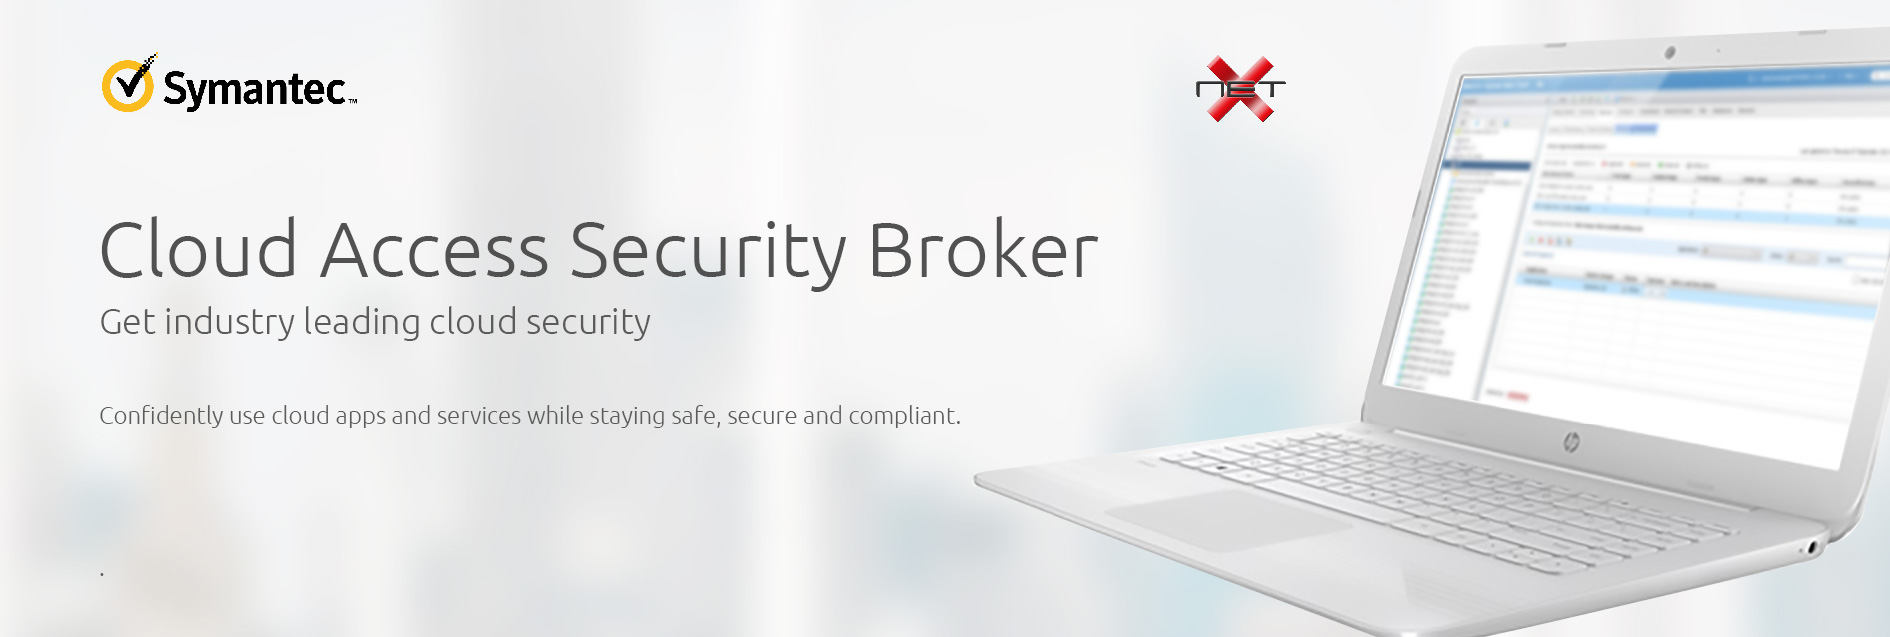 netx-symantec-Cloud-Access-Security-Broker-banner